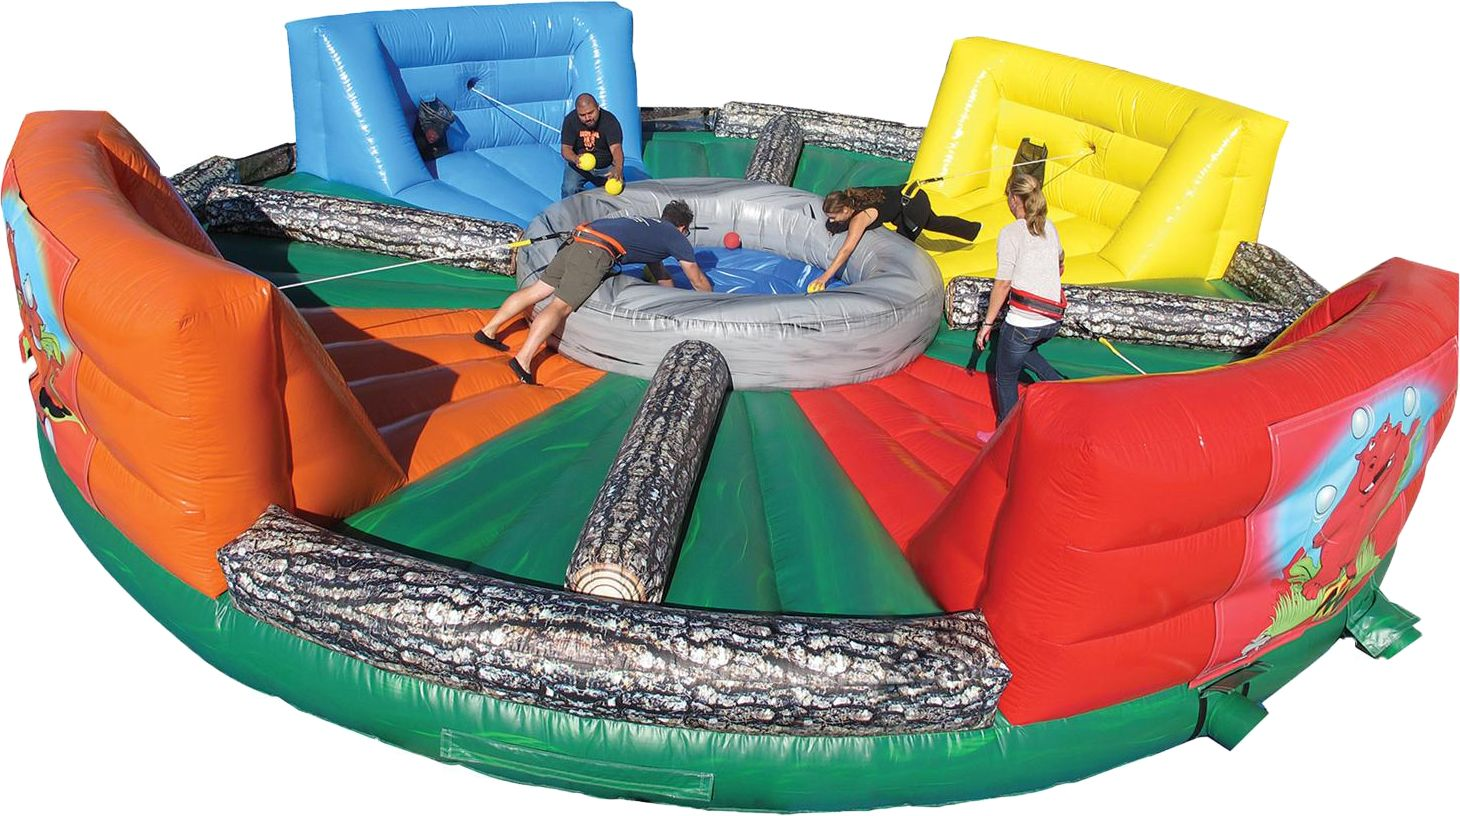 Hippo chow down hungry hippos team building games